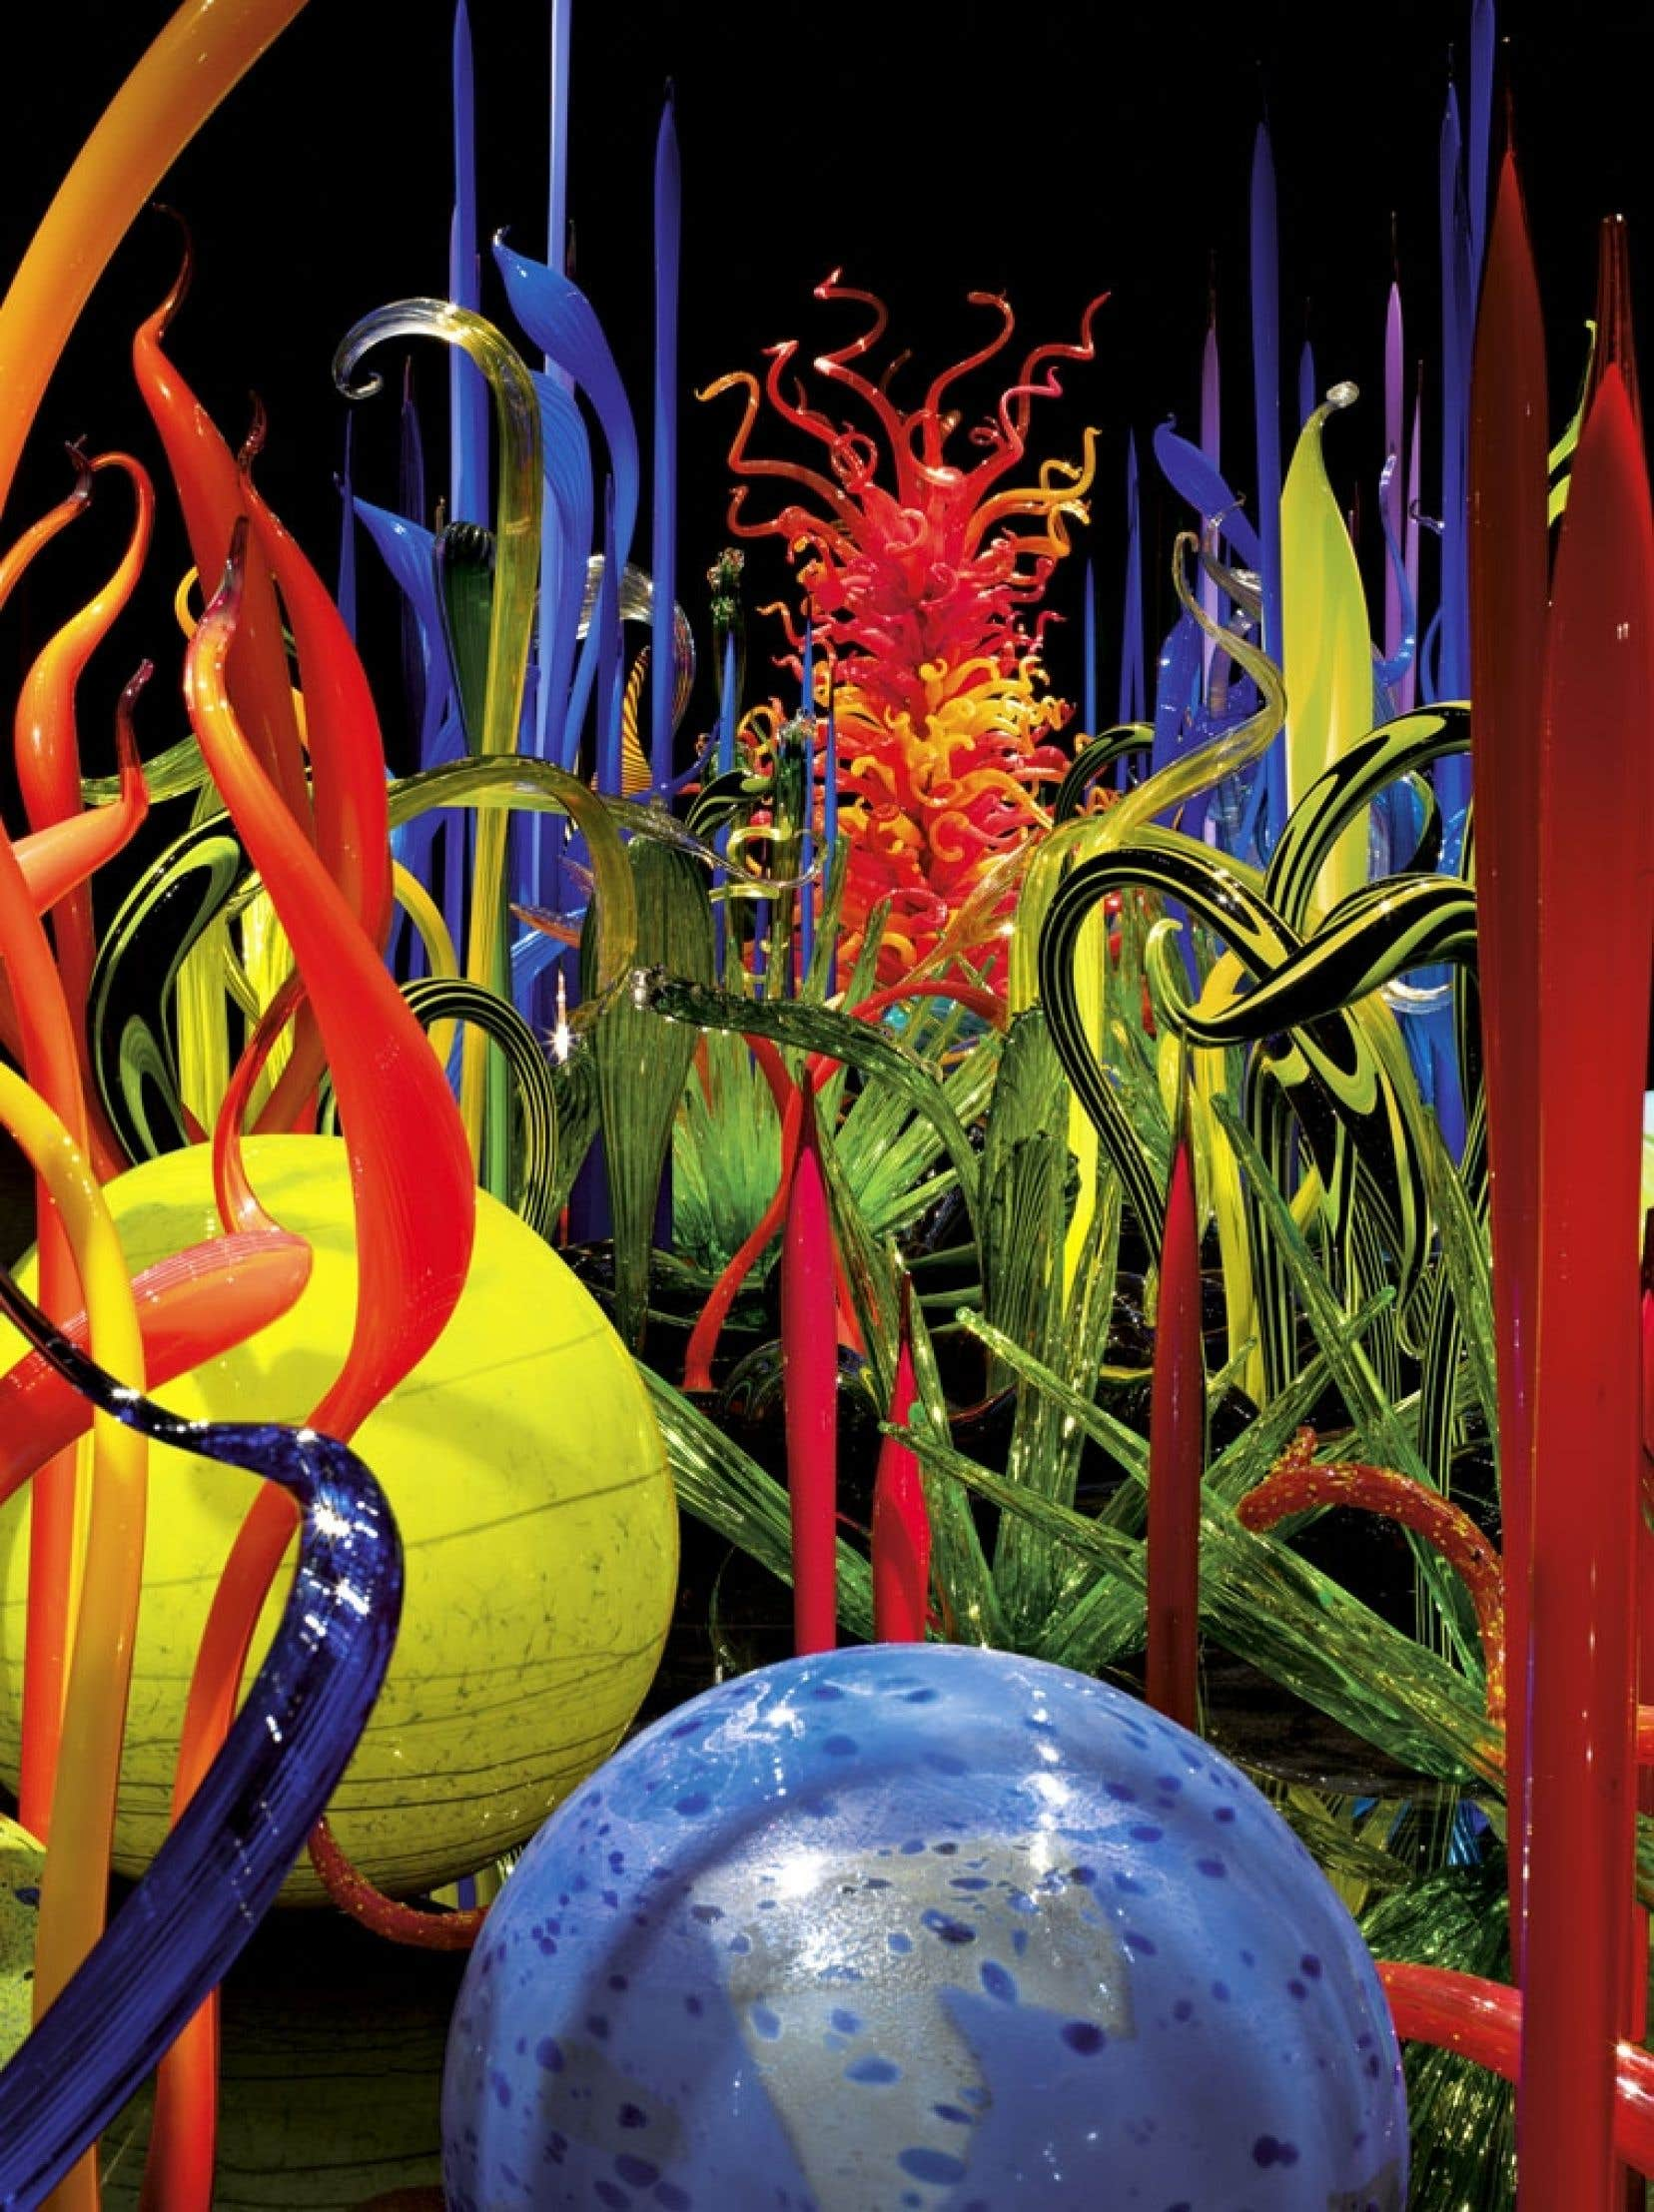 Dale Chihuly, Mille Fiori, 2008.